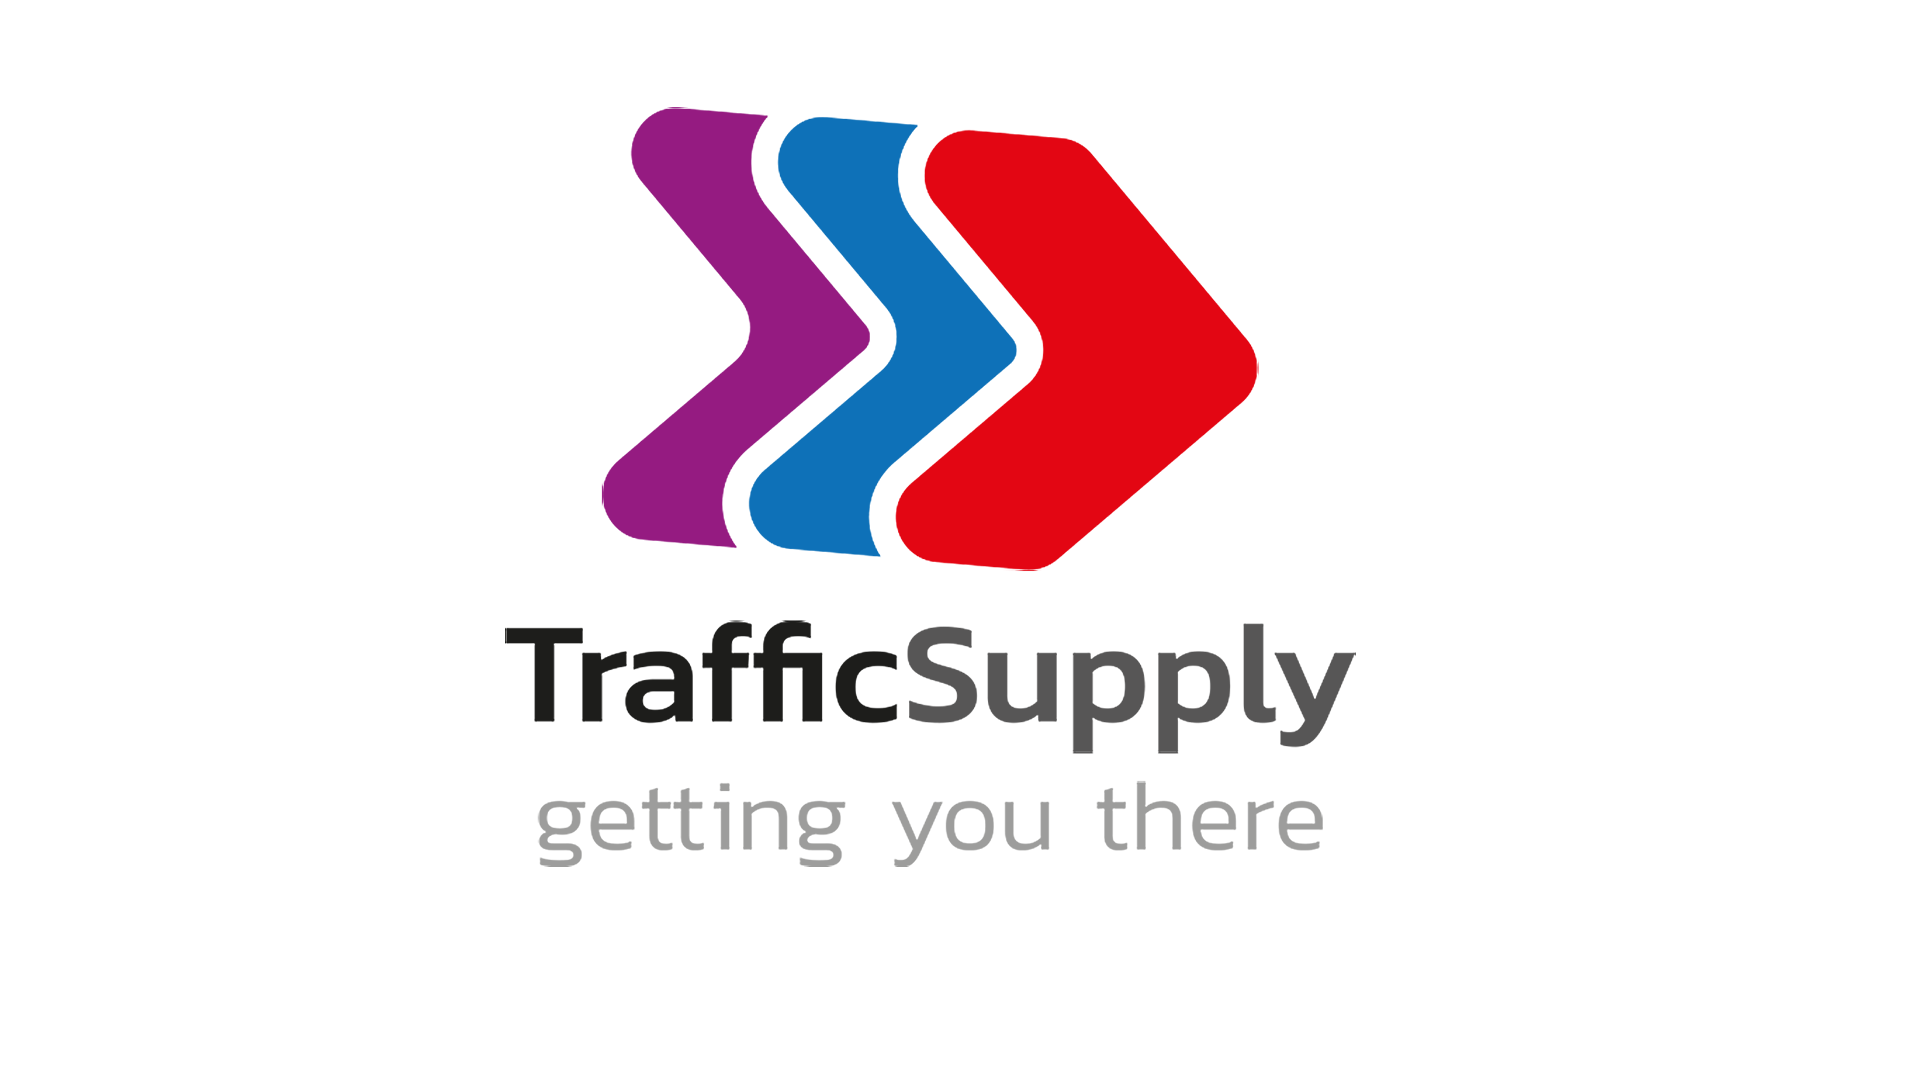 TrafficSupply